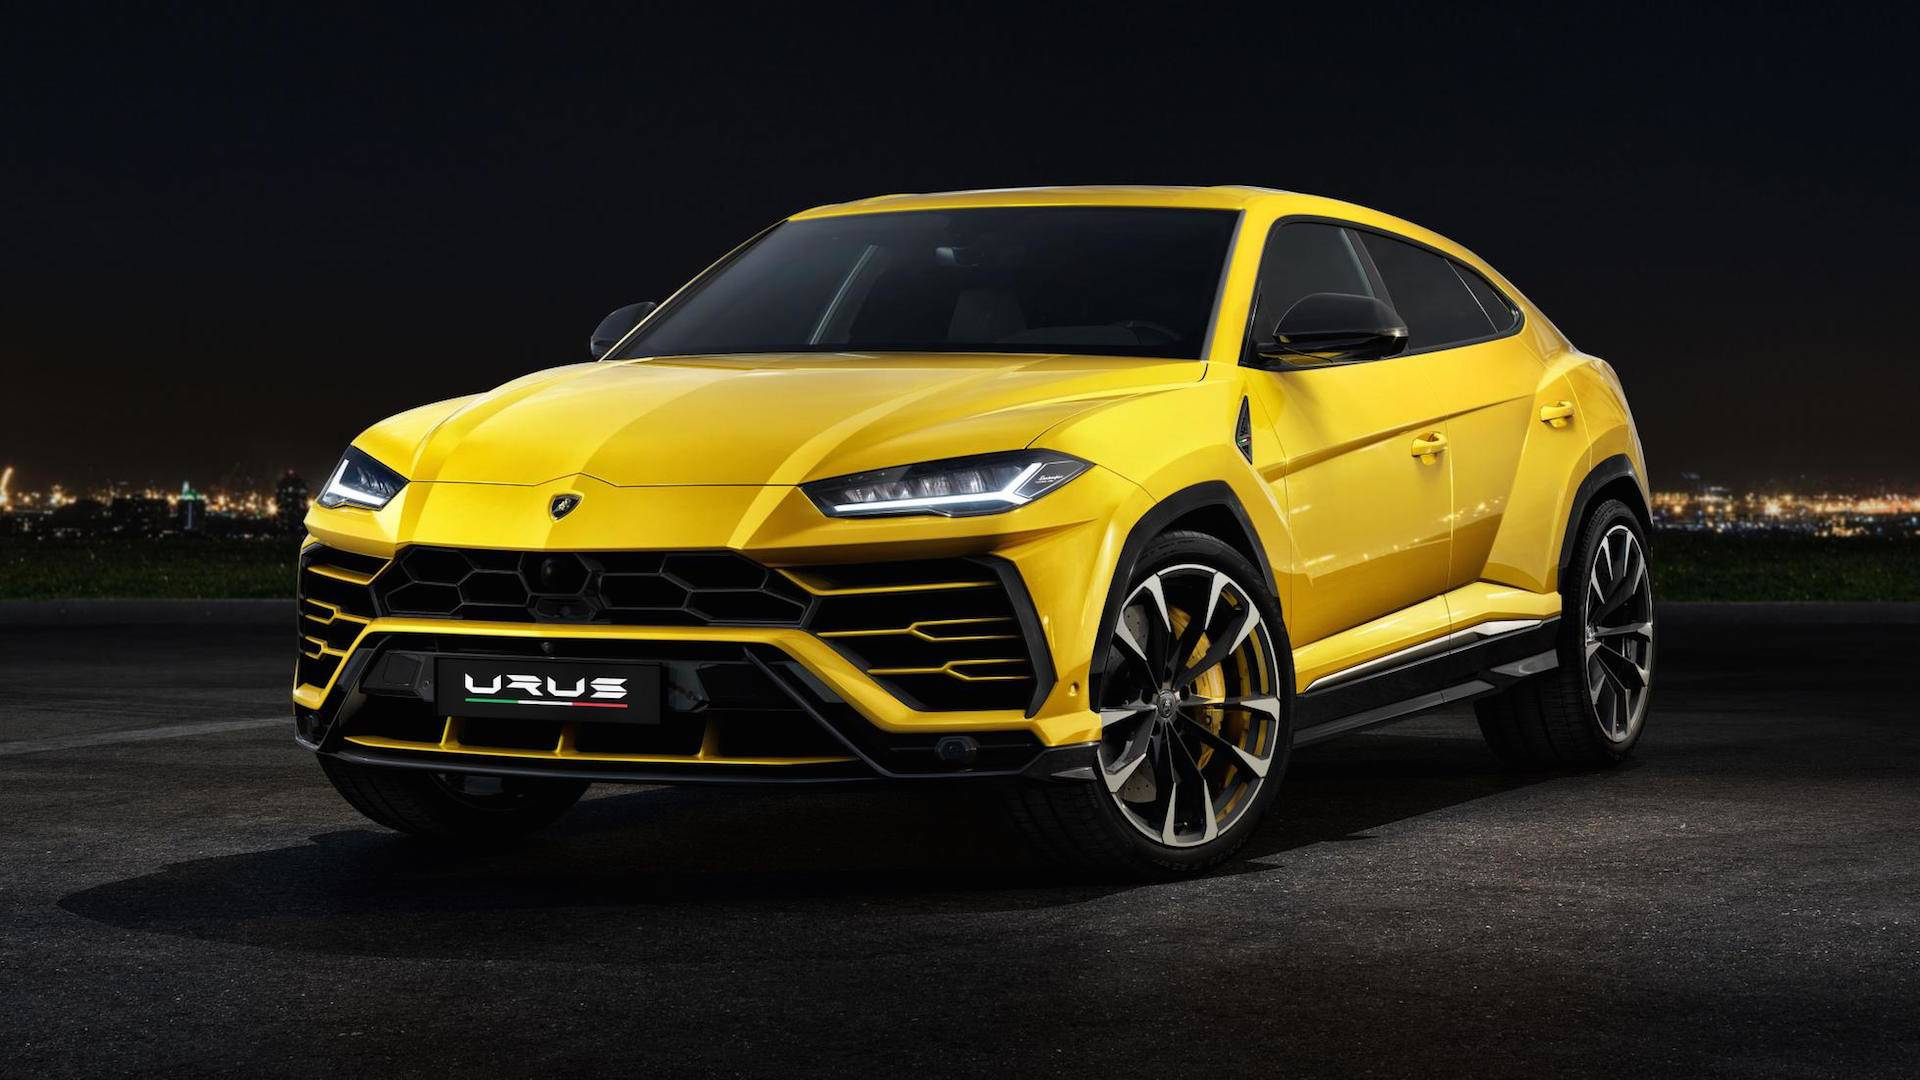 lamborghini urus is the world 39 s fastest suv nurburgring record teased at launch autoevolution. Black Bedroom Furniture Sets. Home Design Ideas